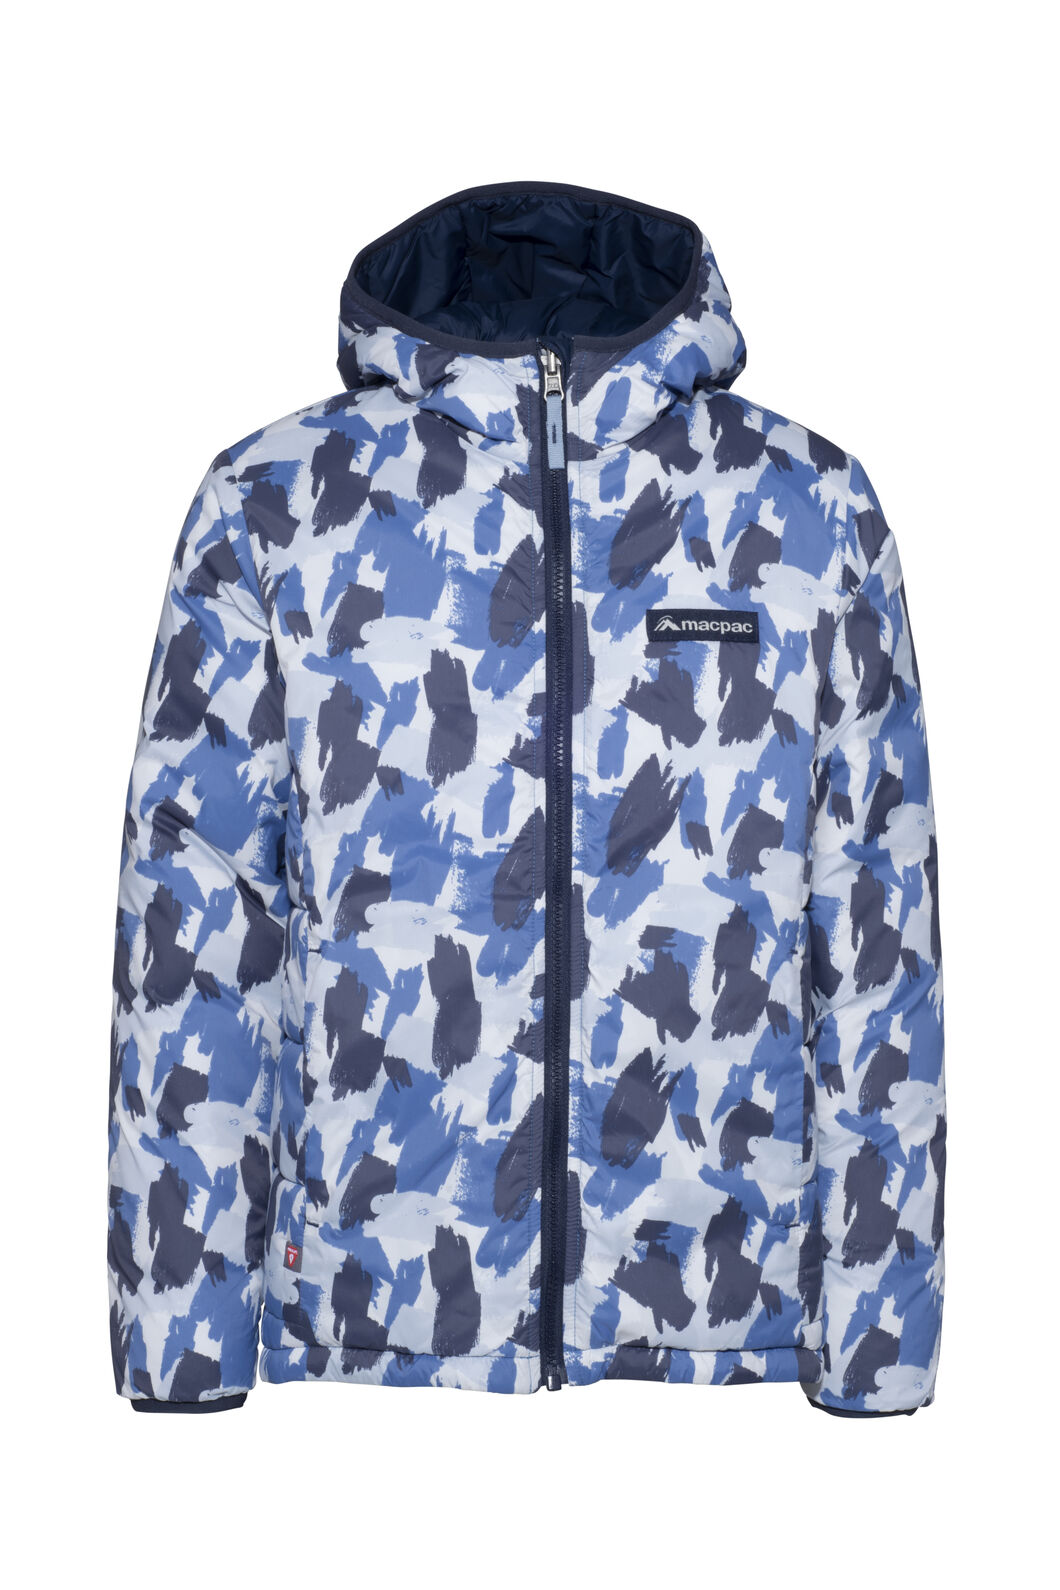 Macpac Pulsar Alpha PrimaLoft® Hooded Jacket — Kids', Blue Camo/Black Iris, hi-res